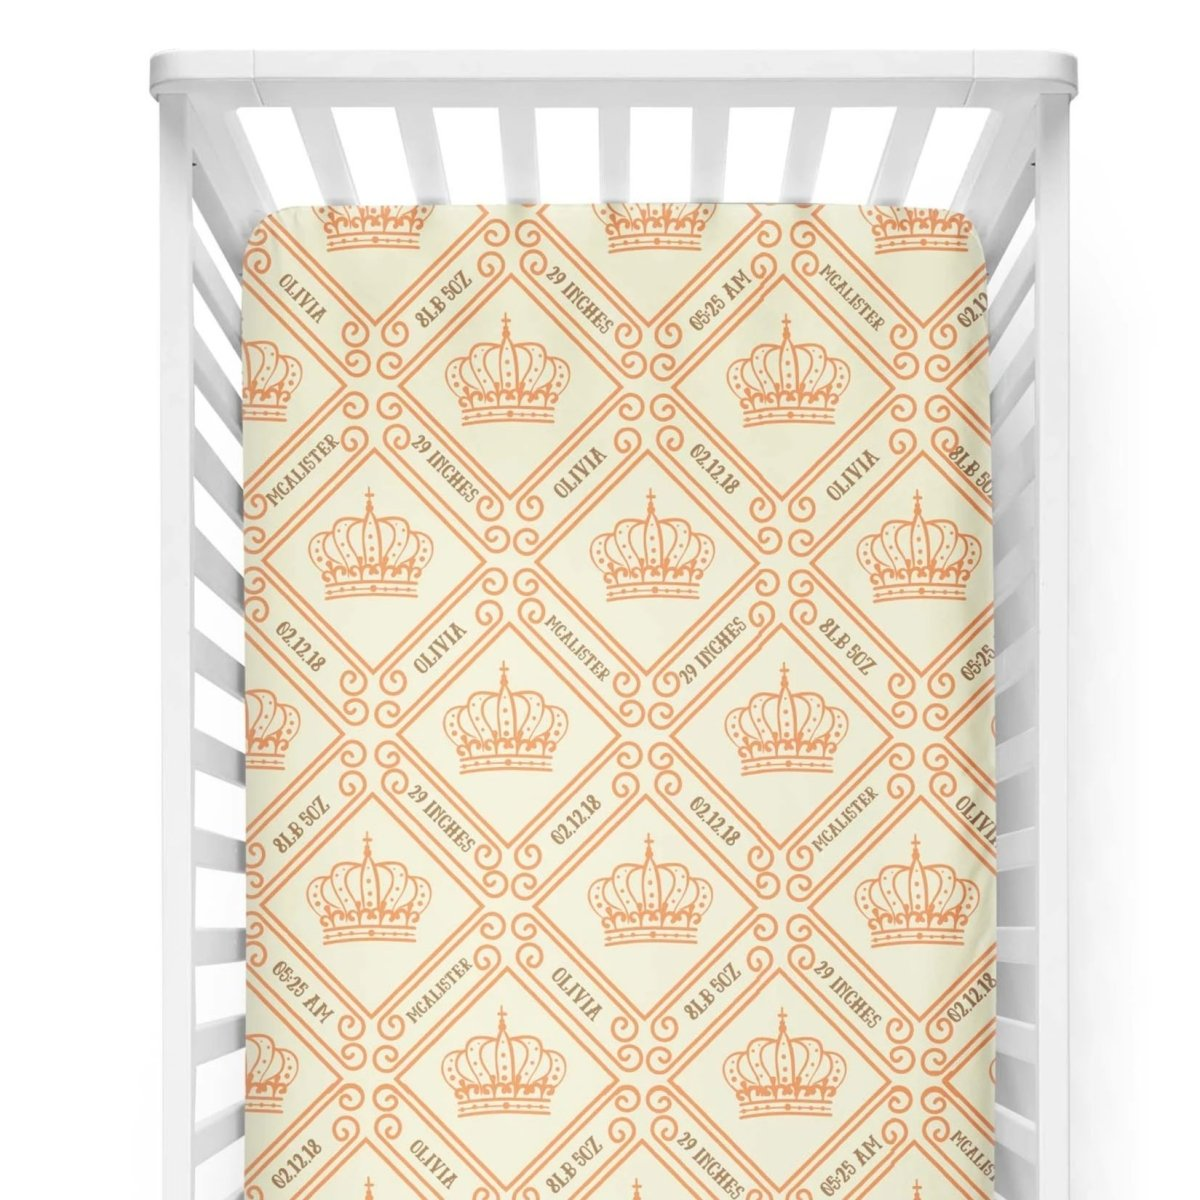 crib Royal Crown Mandarin - Birth Stats and Name - Personalized Fitted Crib Sheet - ZERO TO THREE CLUB crib